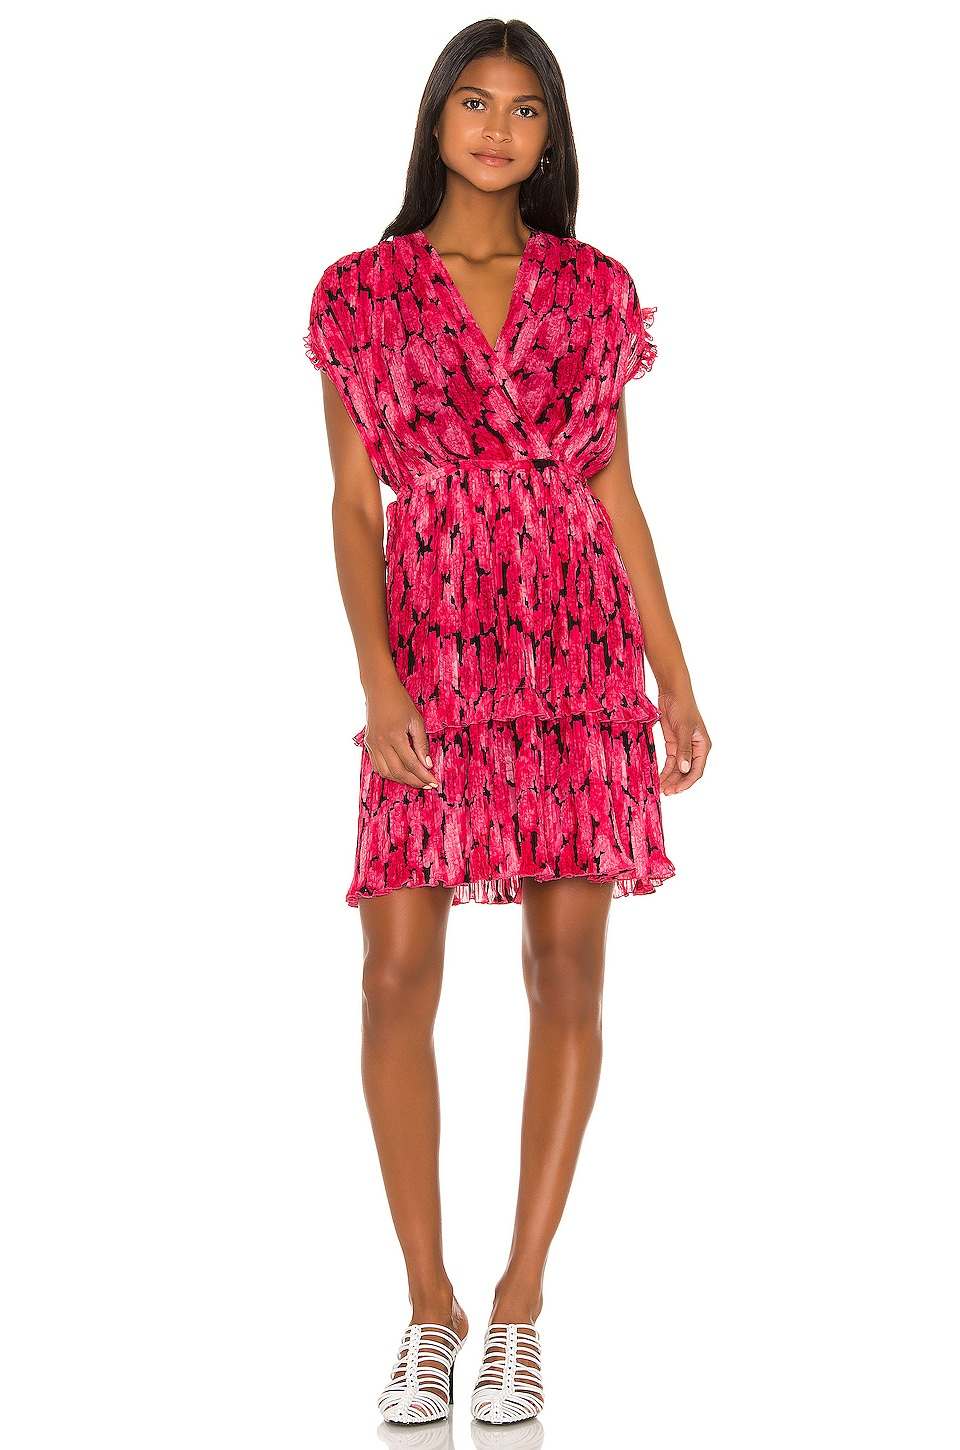 Kenzo Peonie Dress in Deep Fuchsia